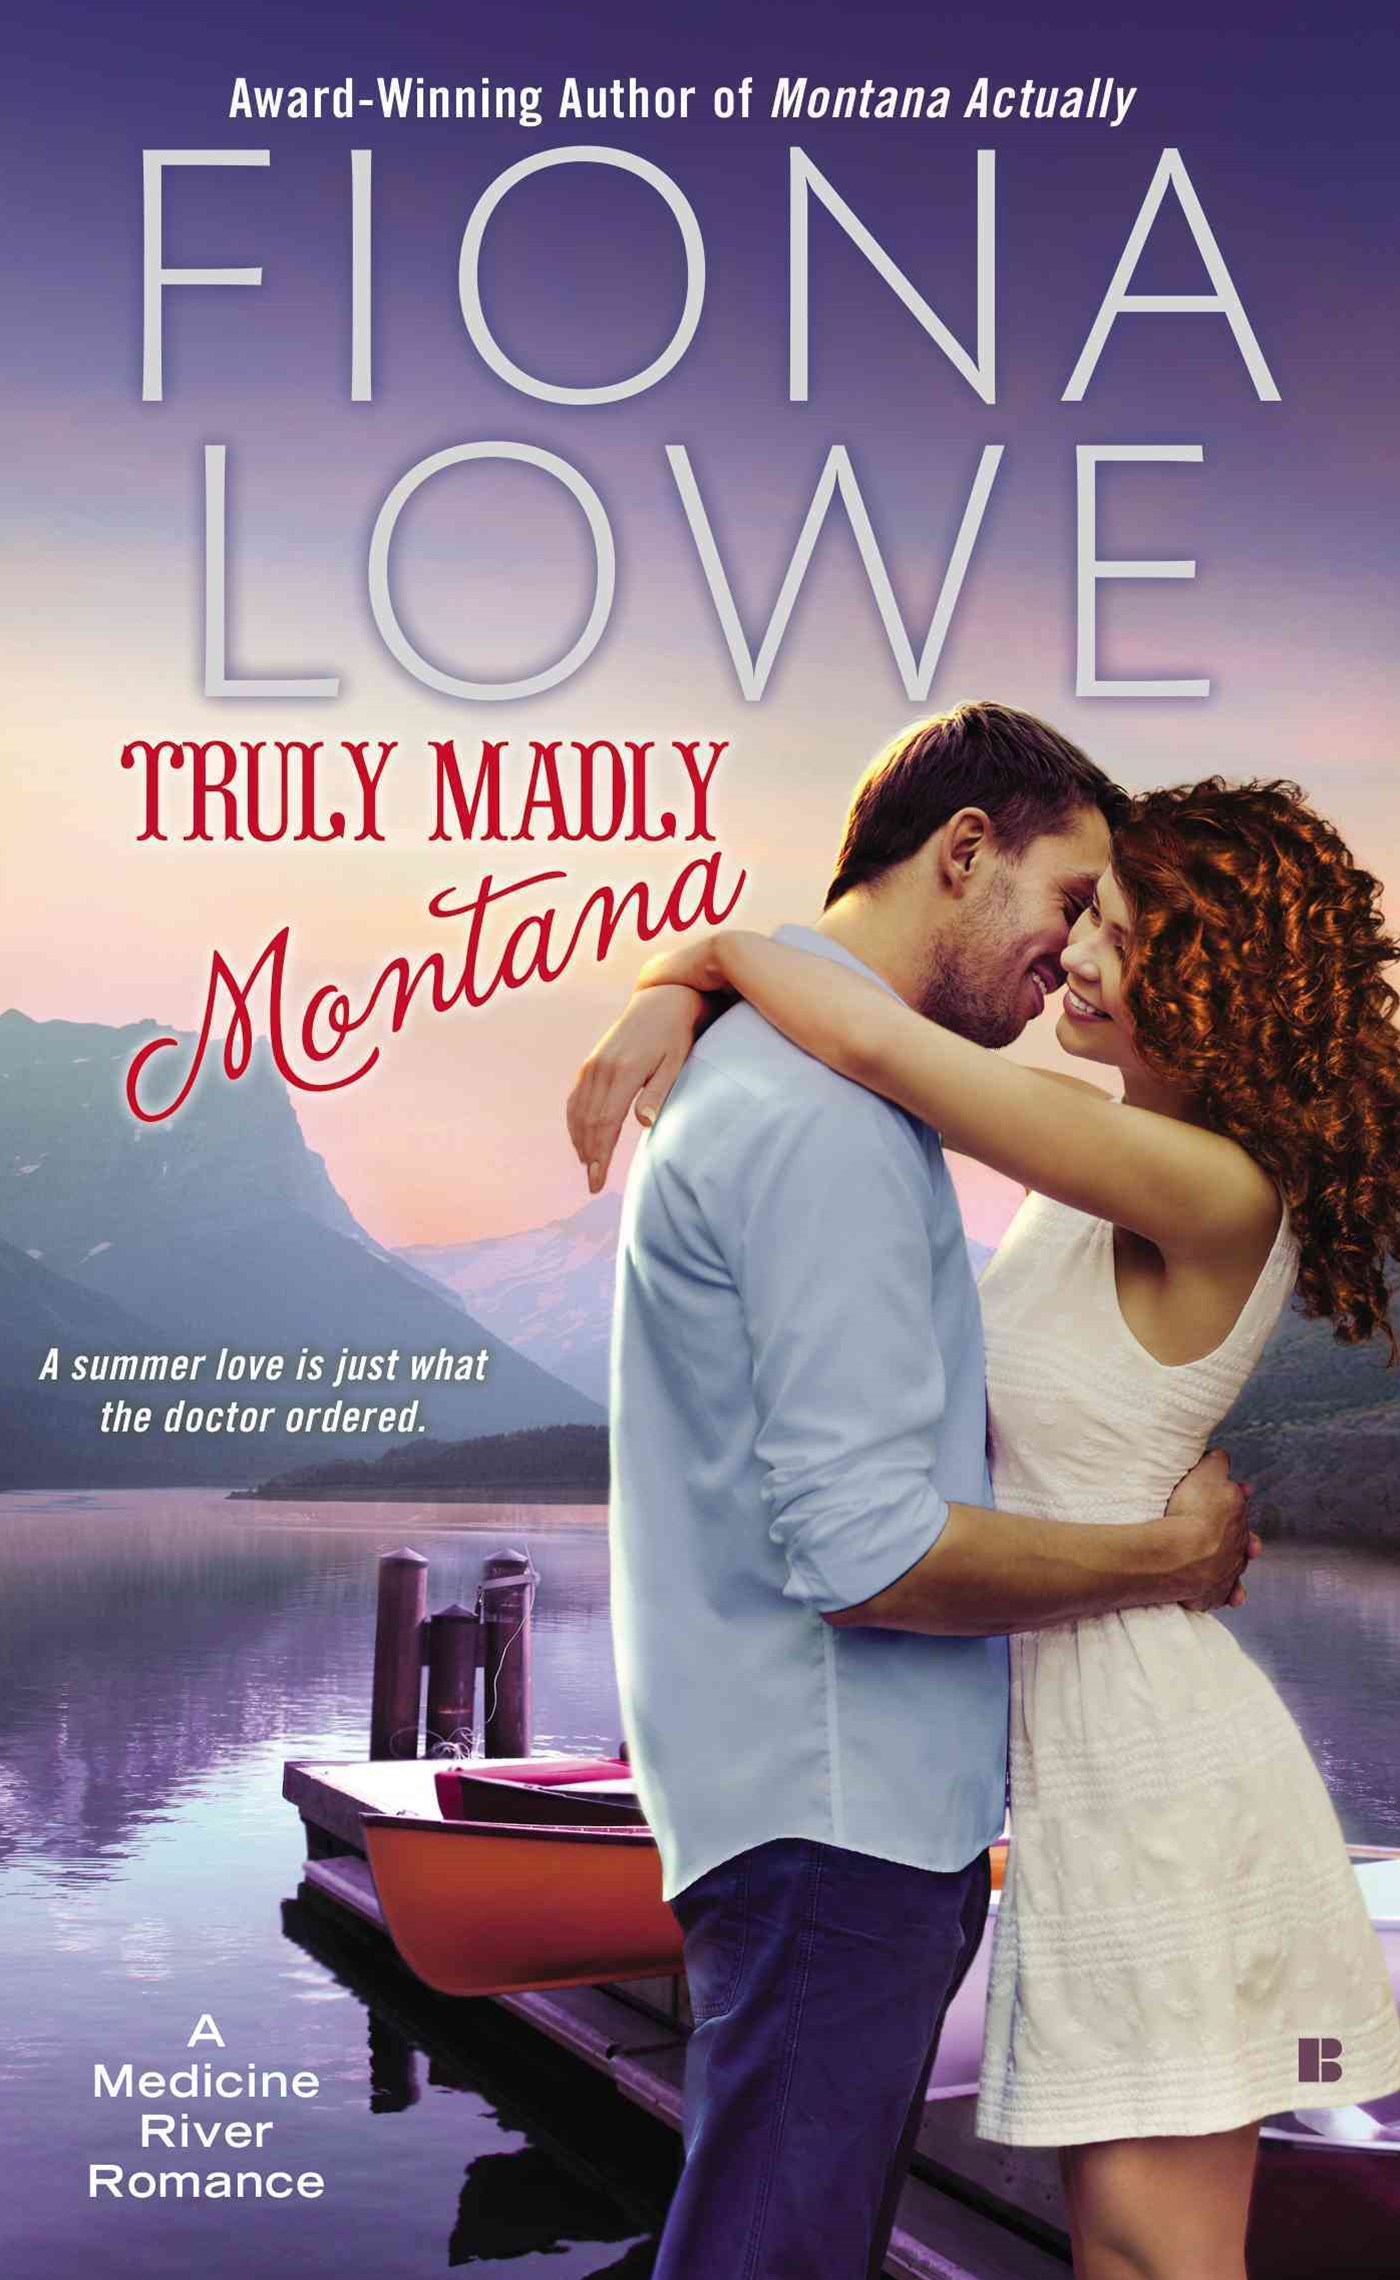 Truly Madly Montana: A Medicine River Romance Book 2